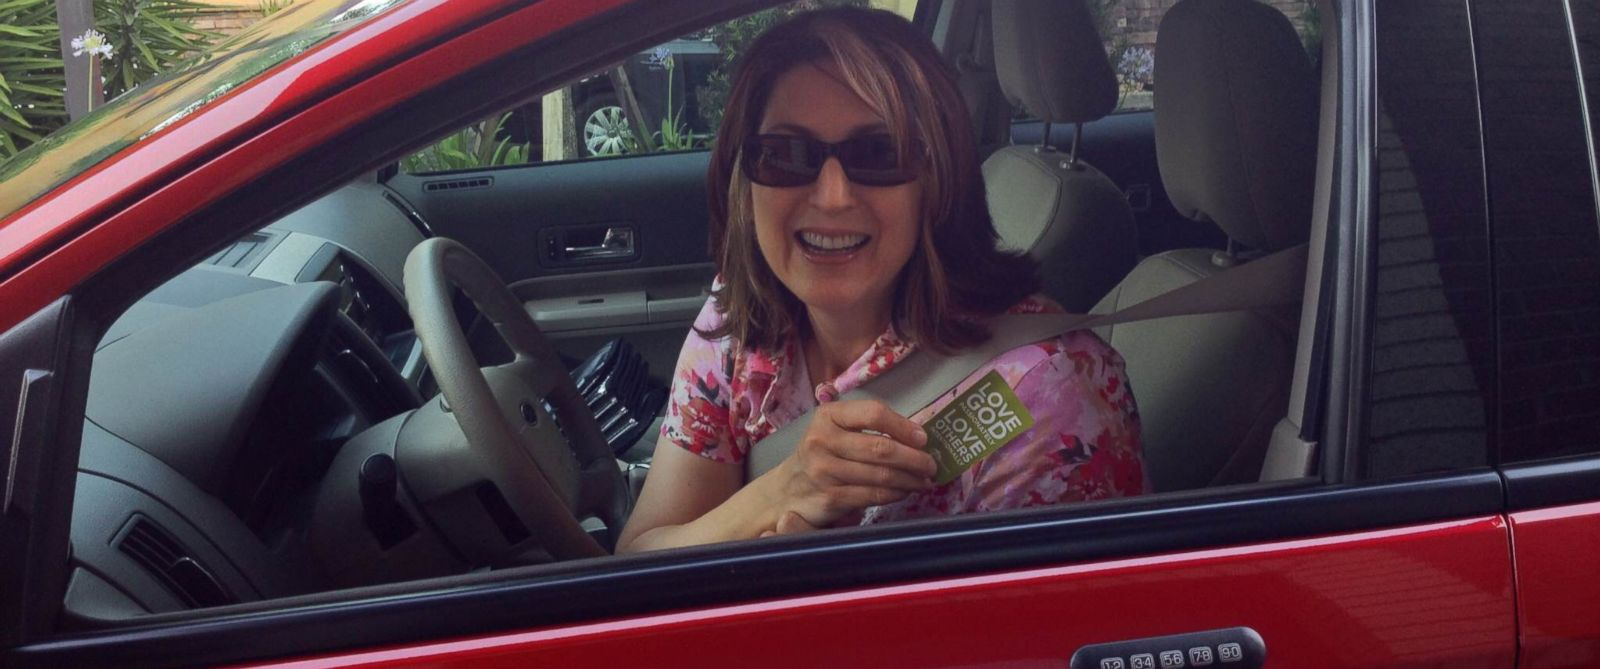 PHOTO: One woman started a pay-it-forward chain at a Florida Chick-fil-A that lasted 38 cars.